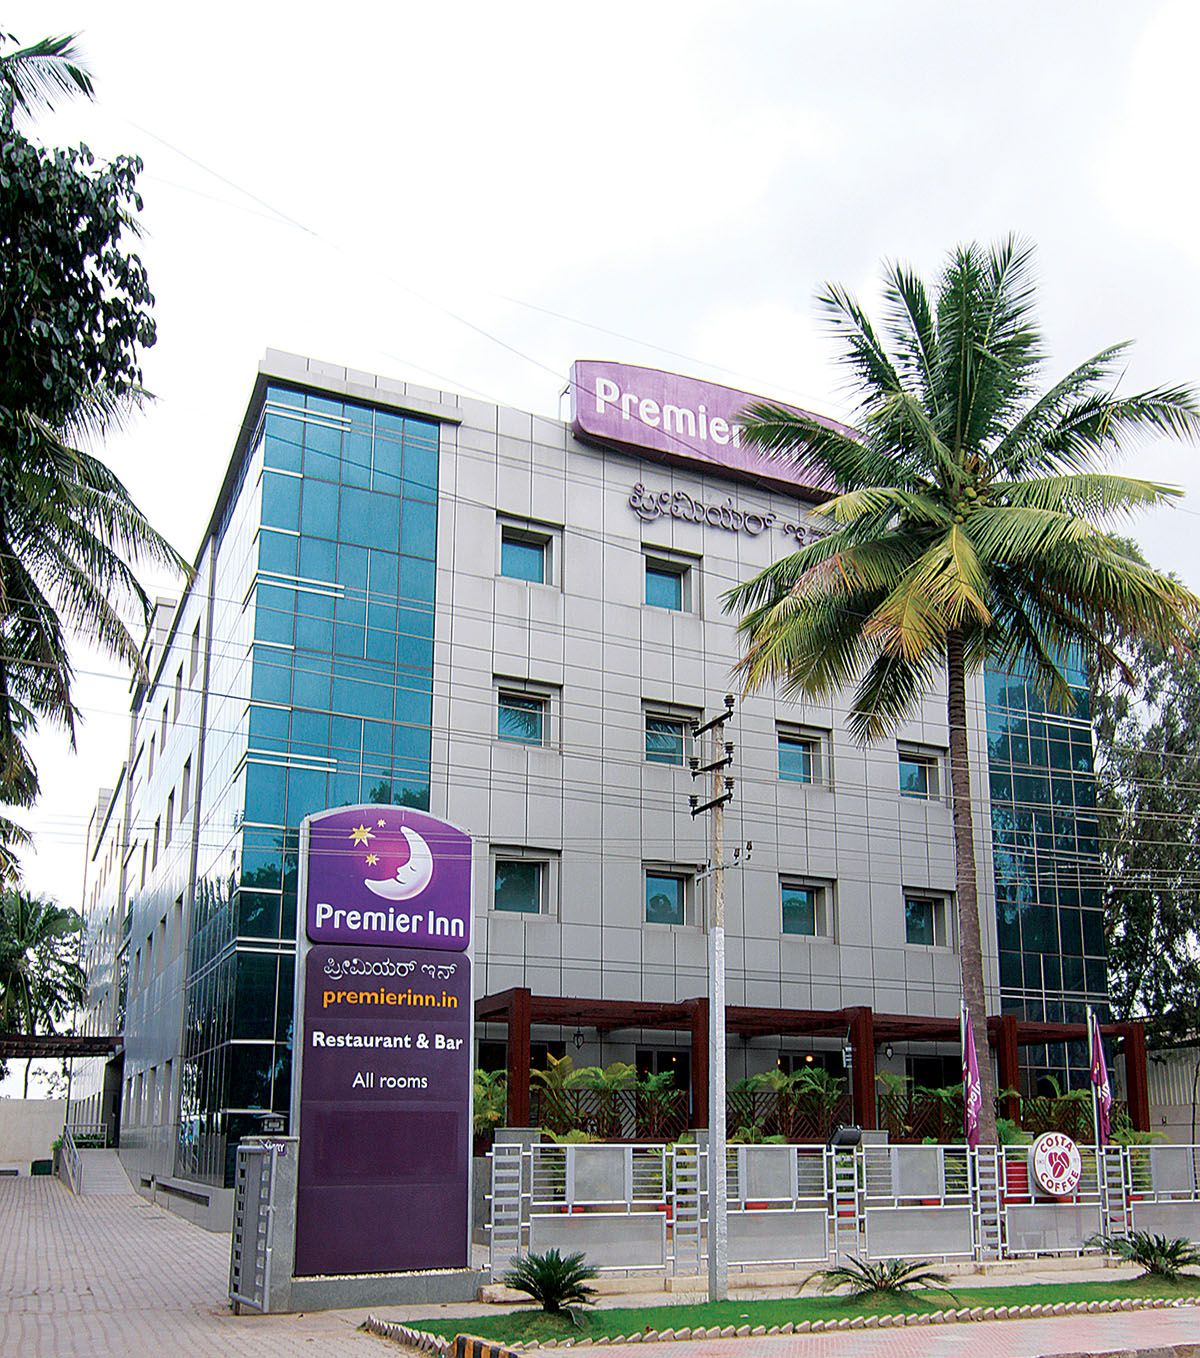 Premier Inn Budget Hotel Chains In India Offer Quality Hotel